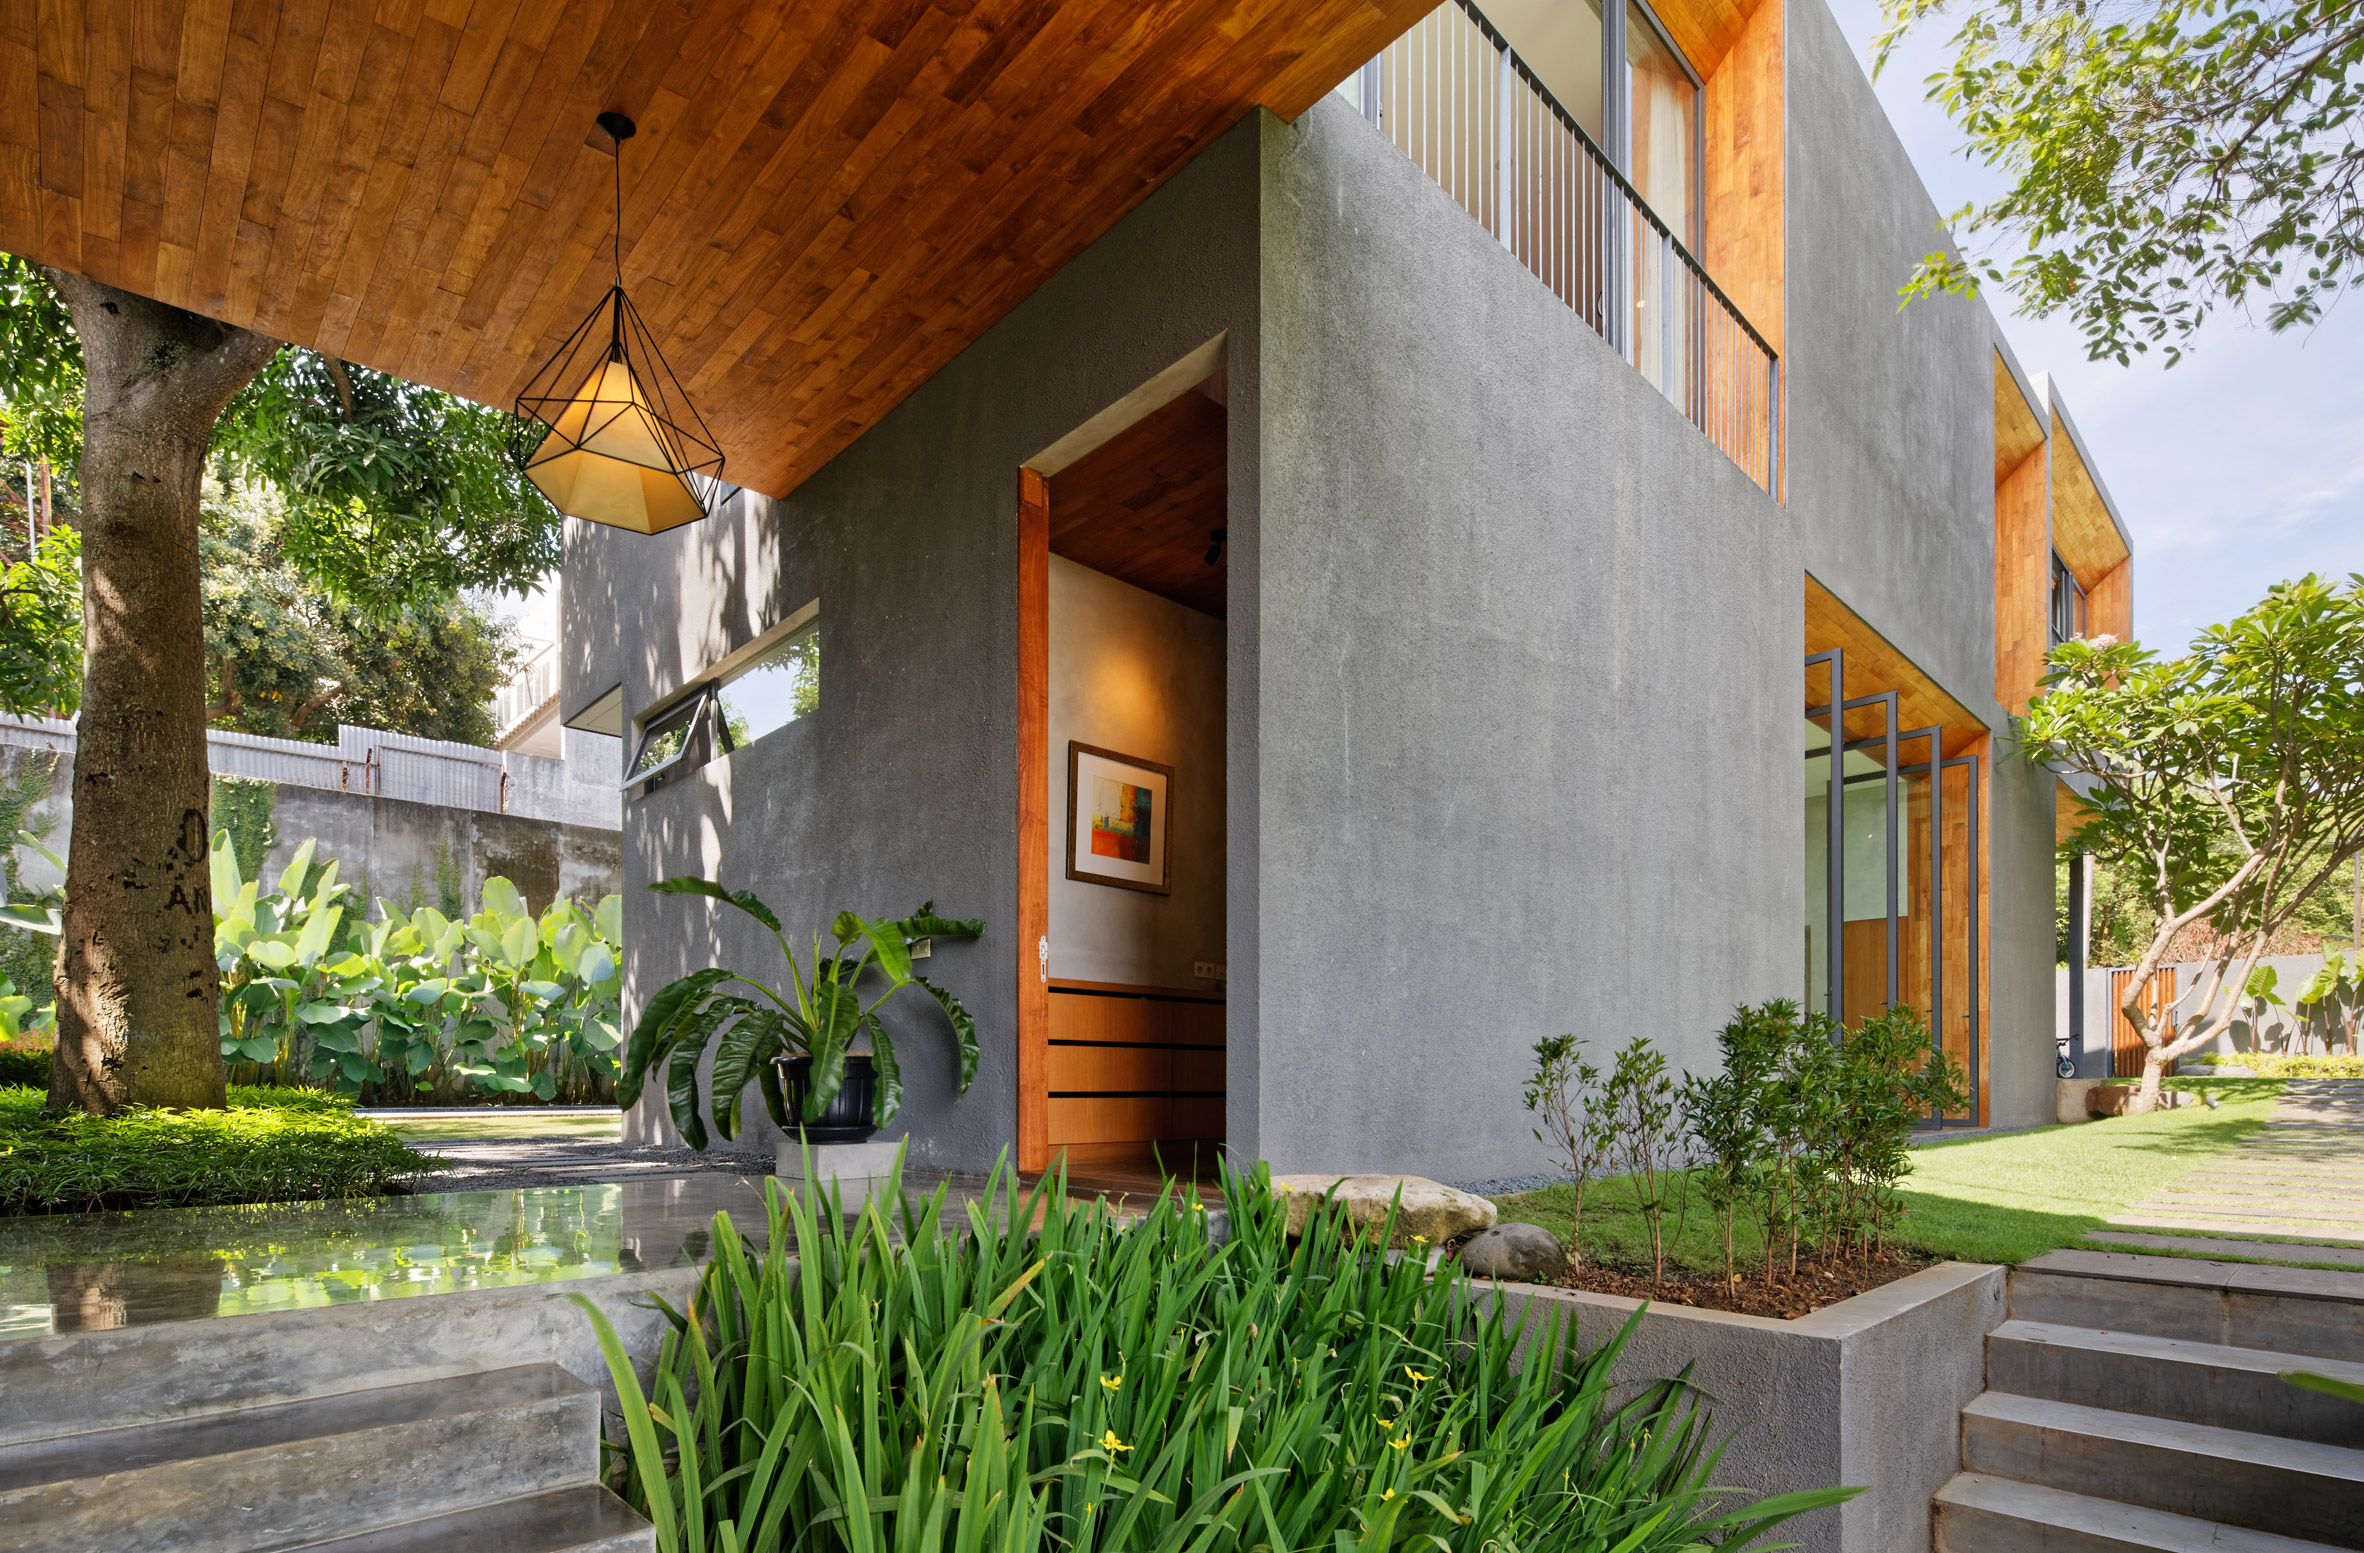 house-inside-outside-tamara-wibowo-architecture-residential-indonesia_dezeen_2364_col_11.jpg